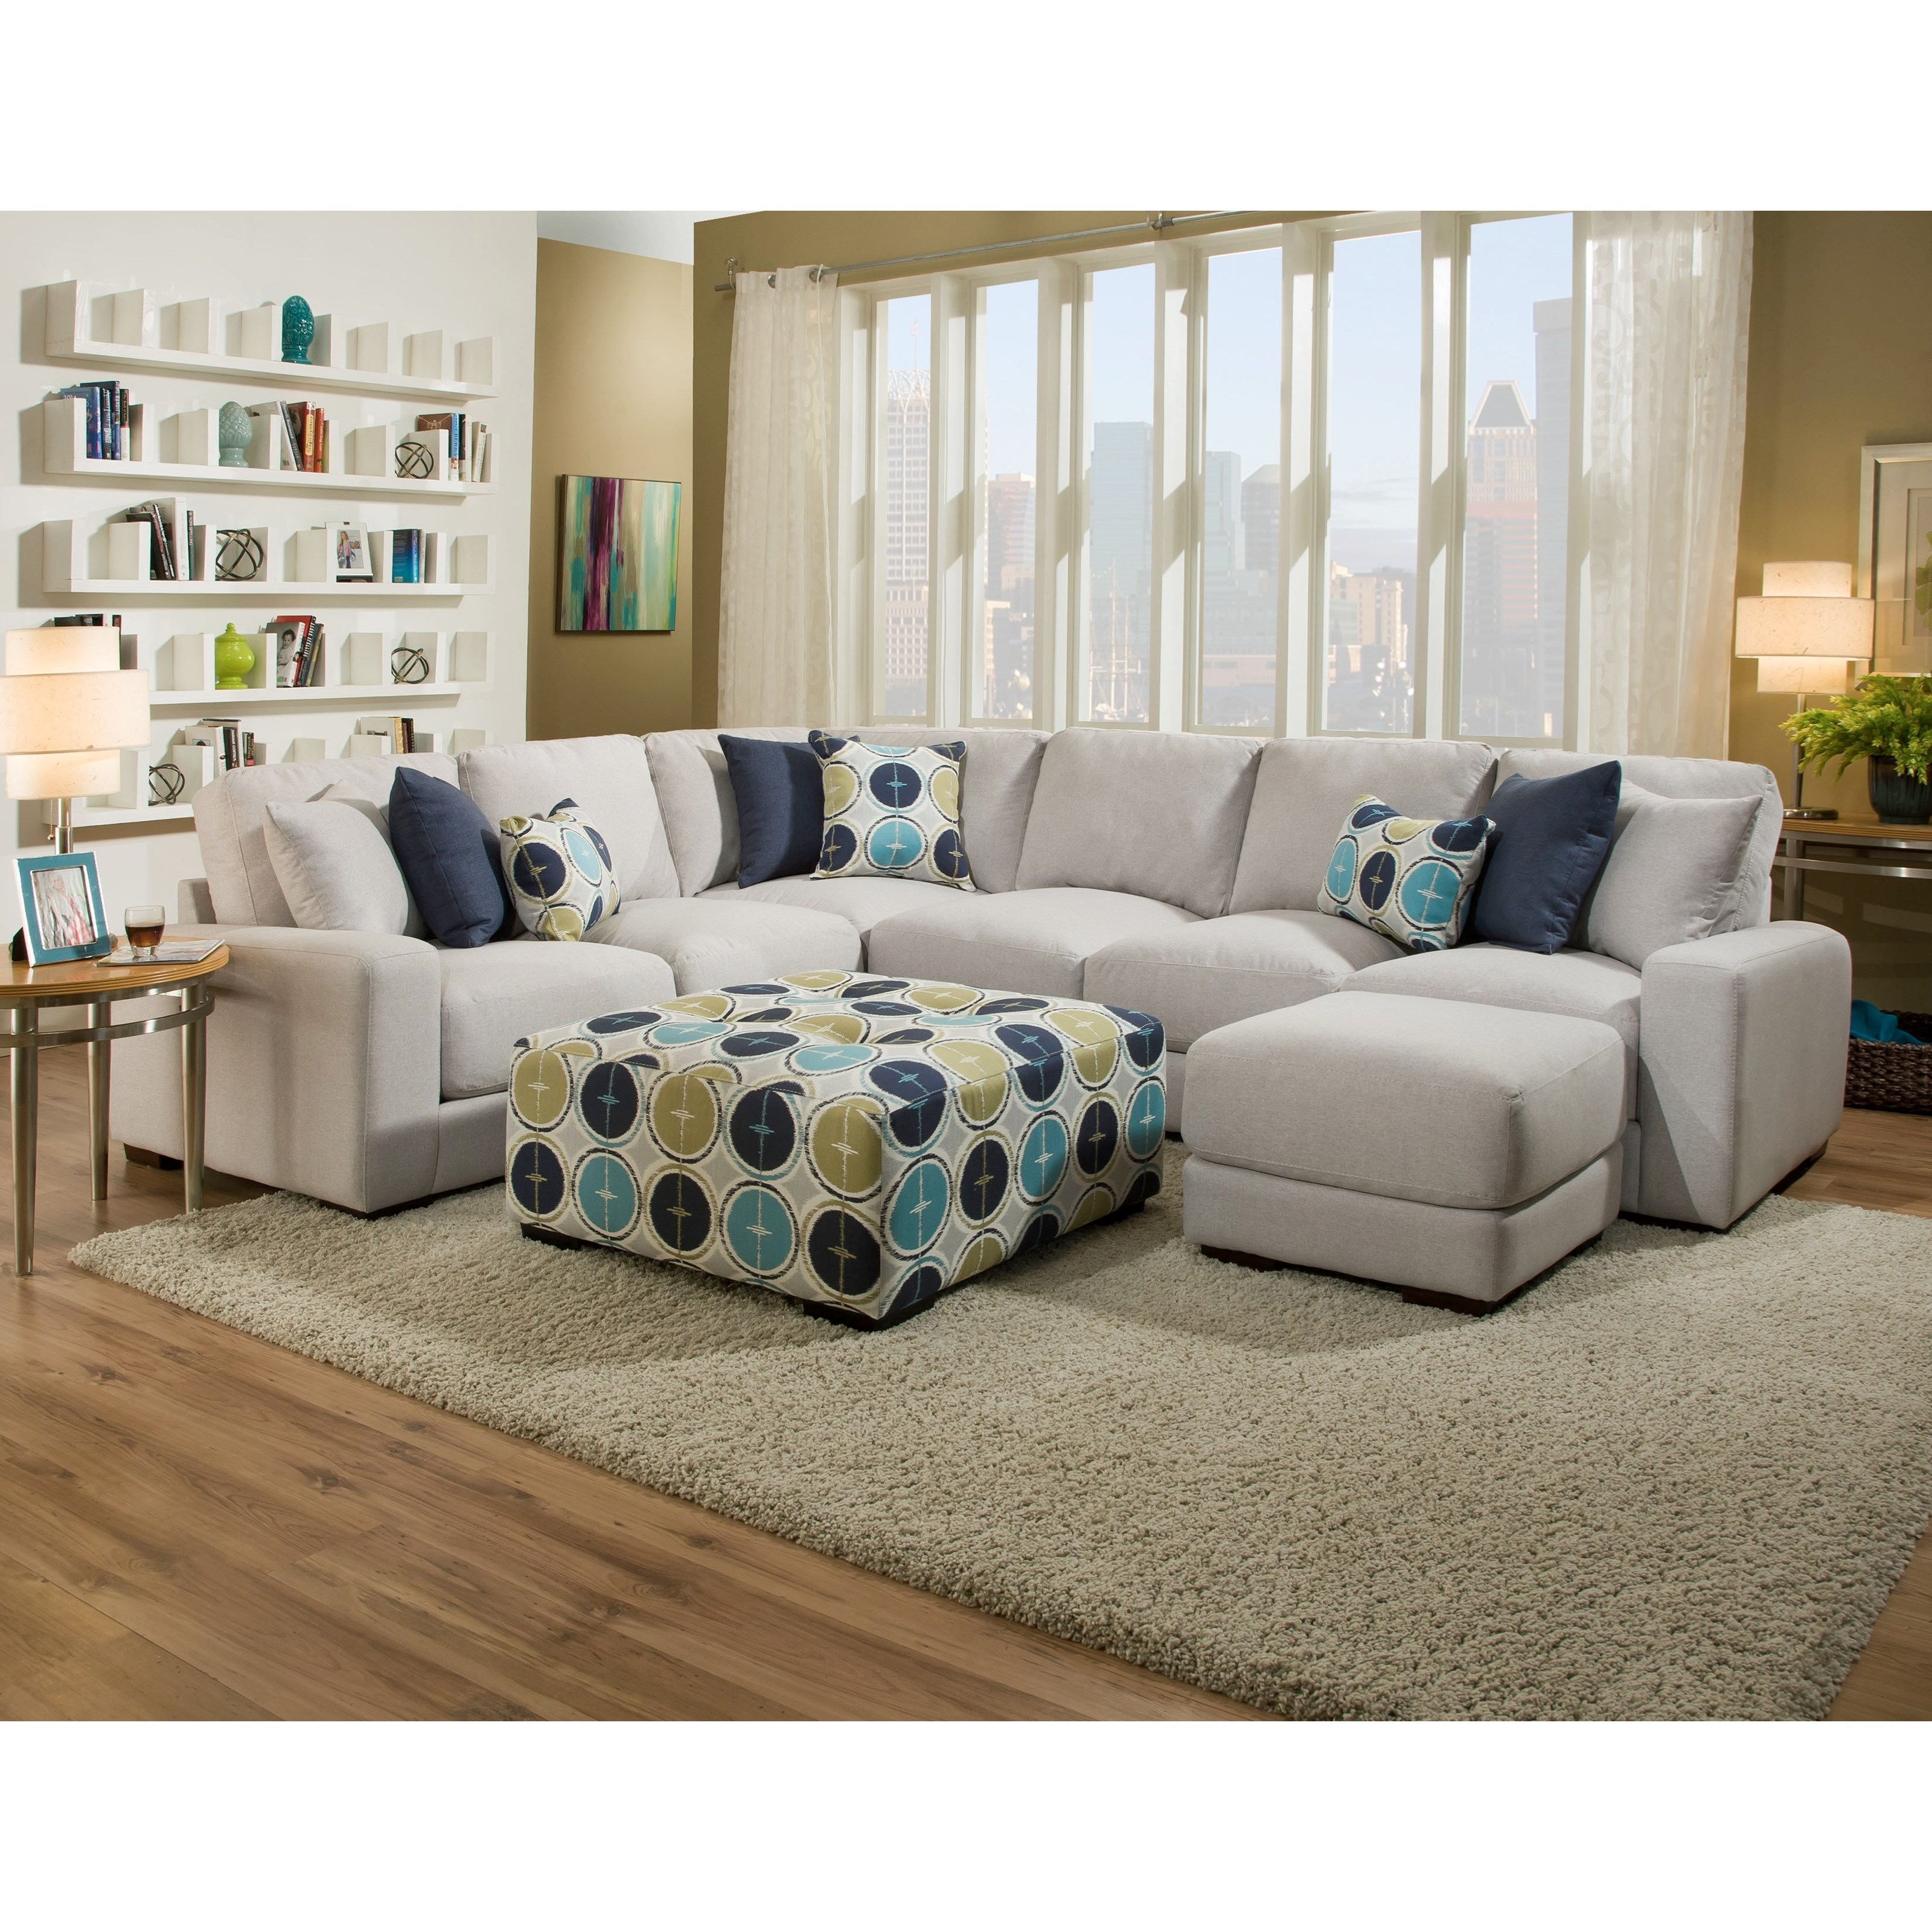 Franklin Jules Sectional Sofa With Pushup Ottoman John V